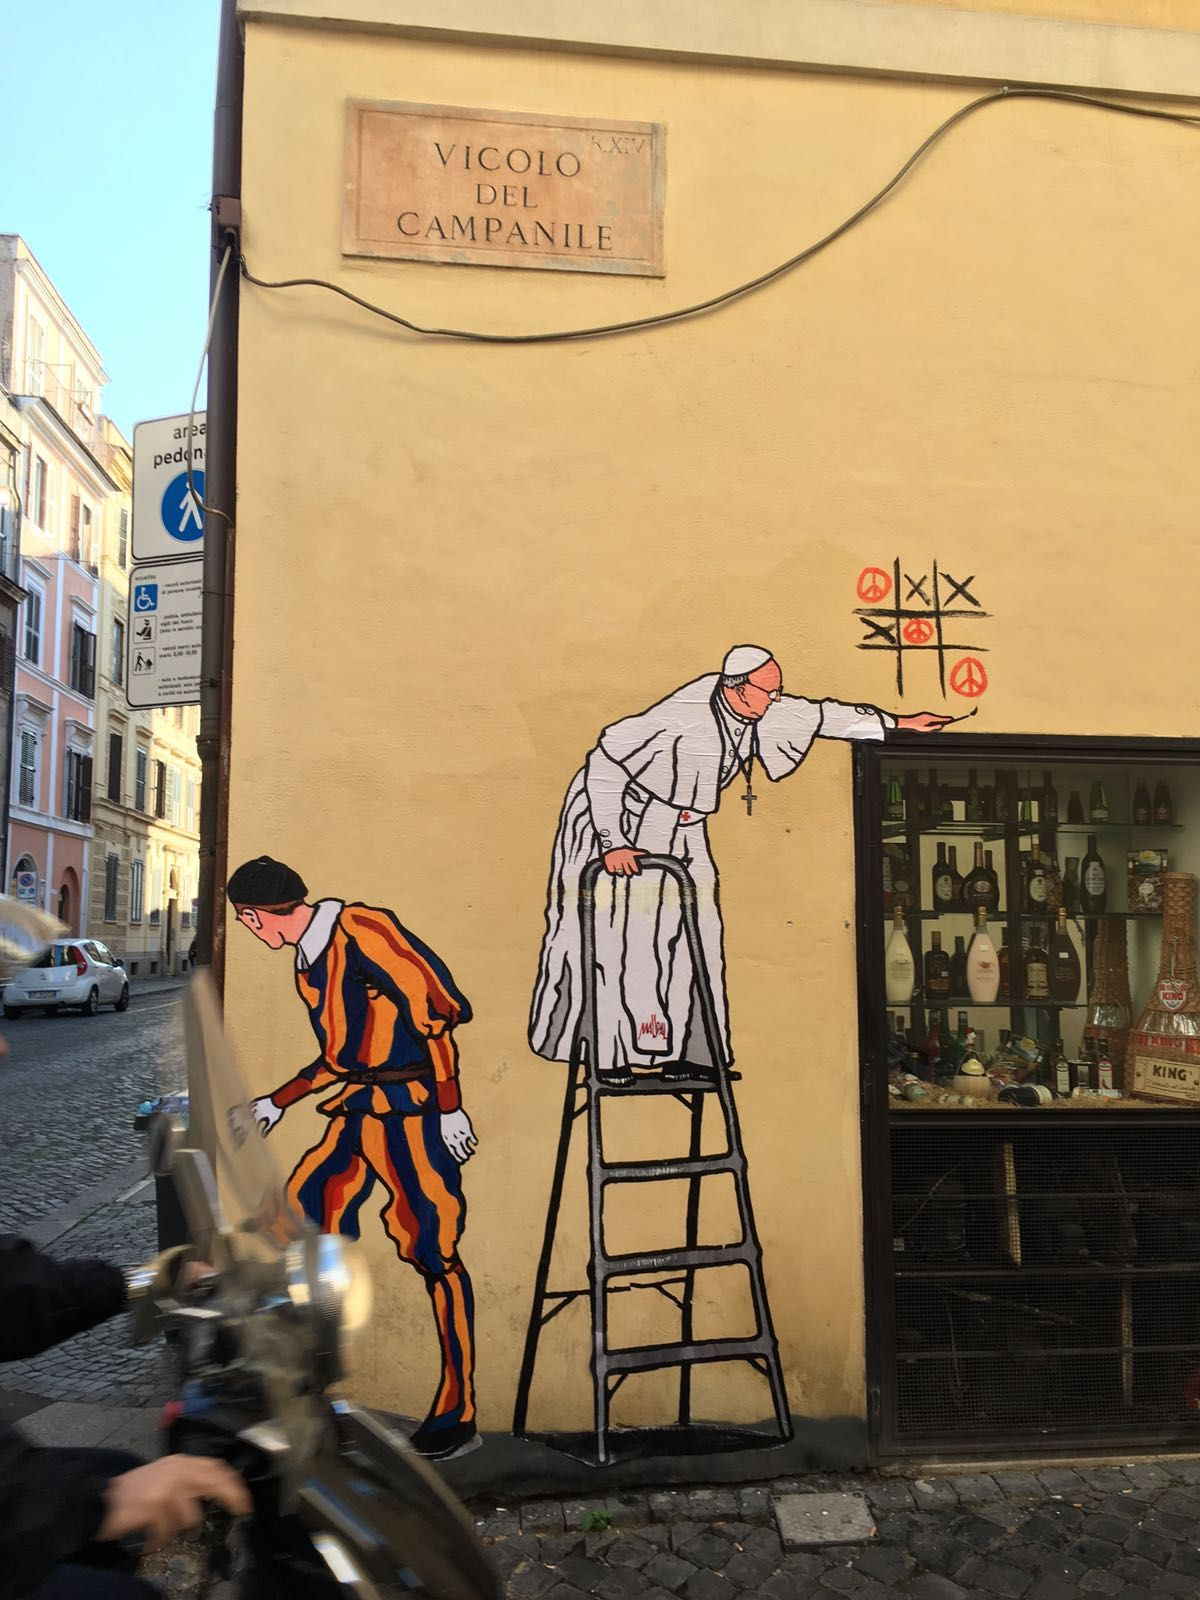 Theres new graffiti art depicting pope francis in rome from street artist maupal mauro pallotta the same person who created the famous super pope